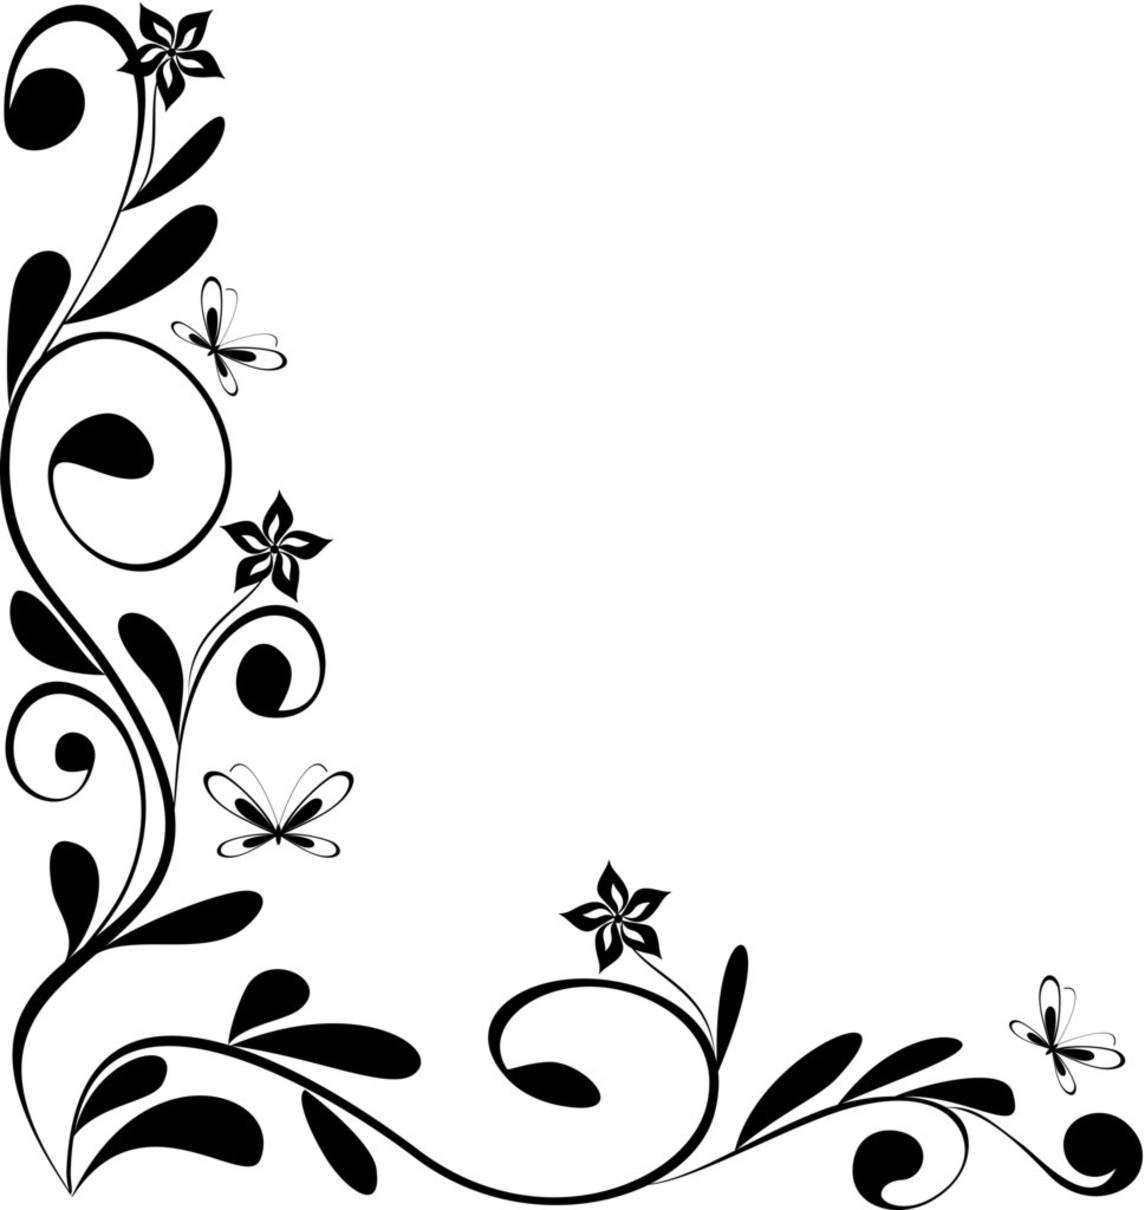 Ever Cool Wallpaper Best And Beautiful Black White Floral